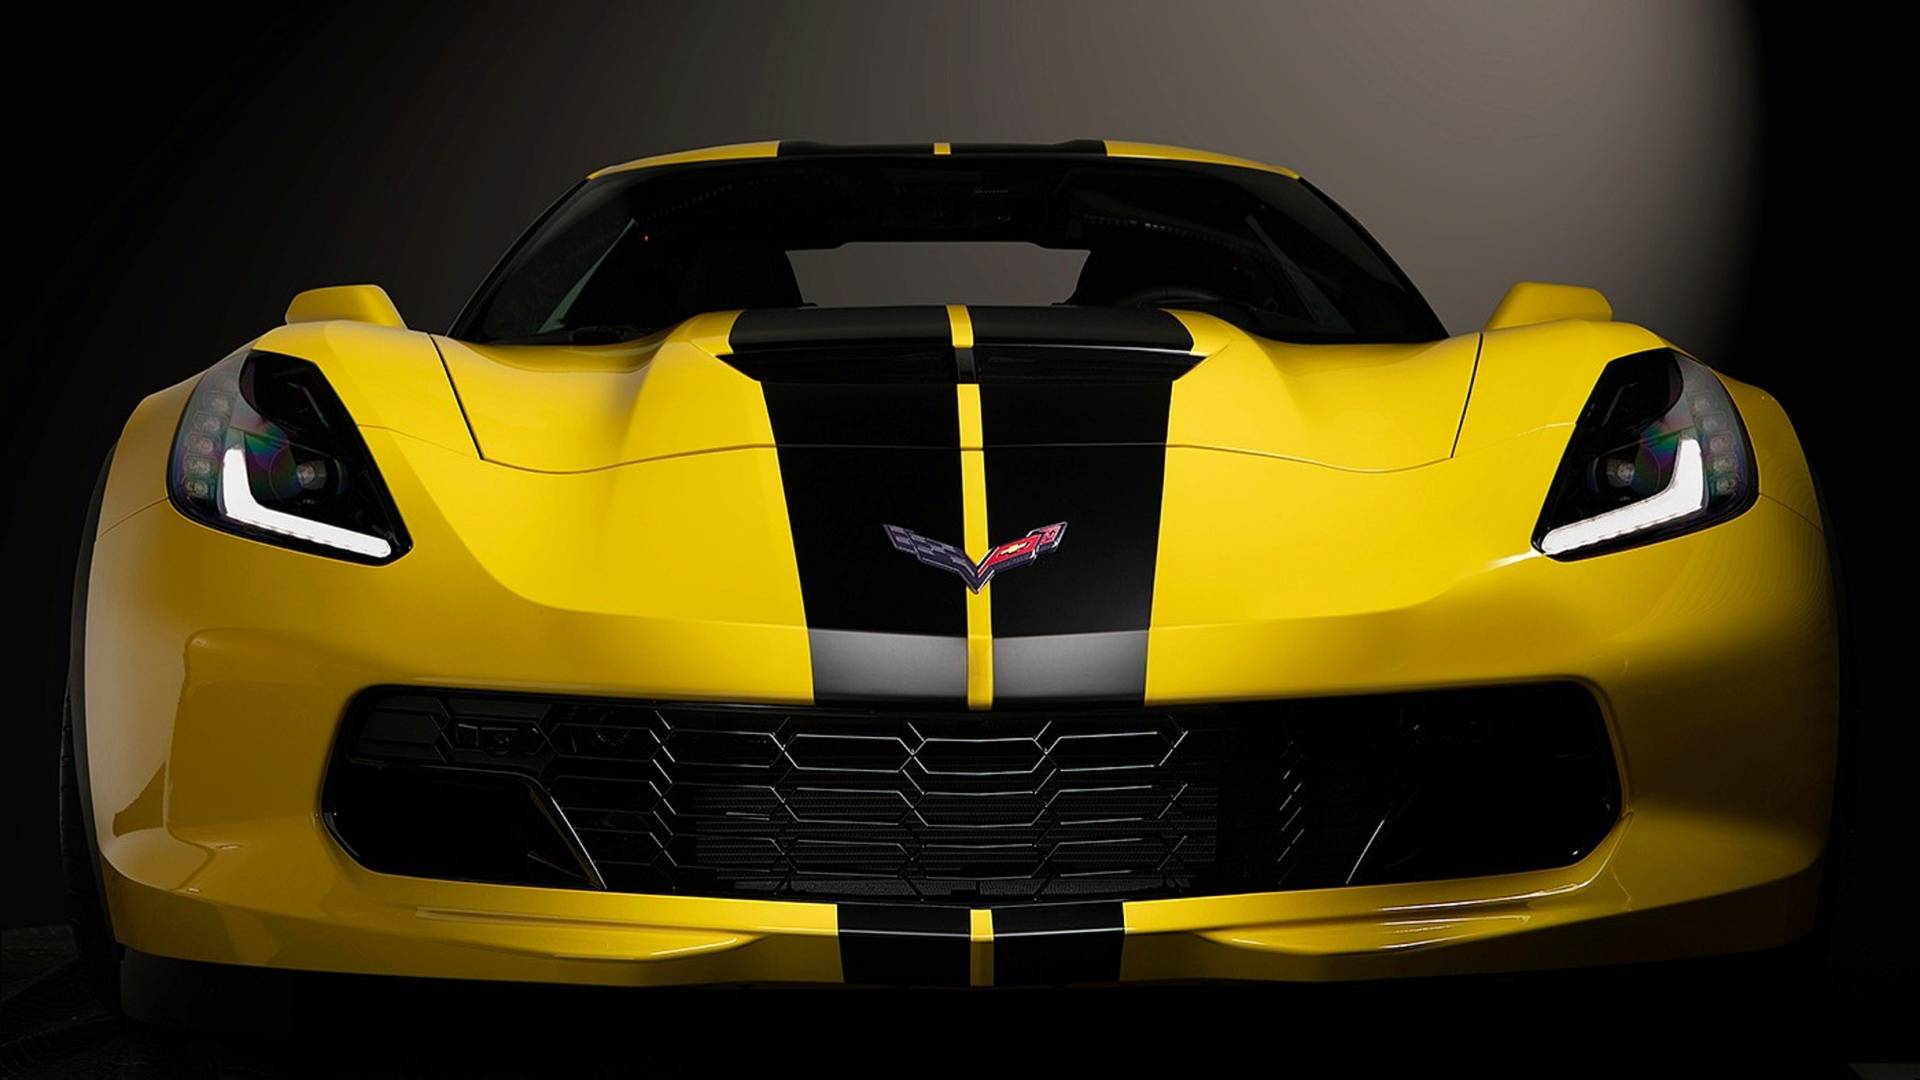 Cab San Diego >> Hertz celebrates 100th anniversary with special Corvette Z06